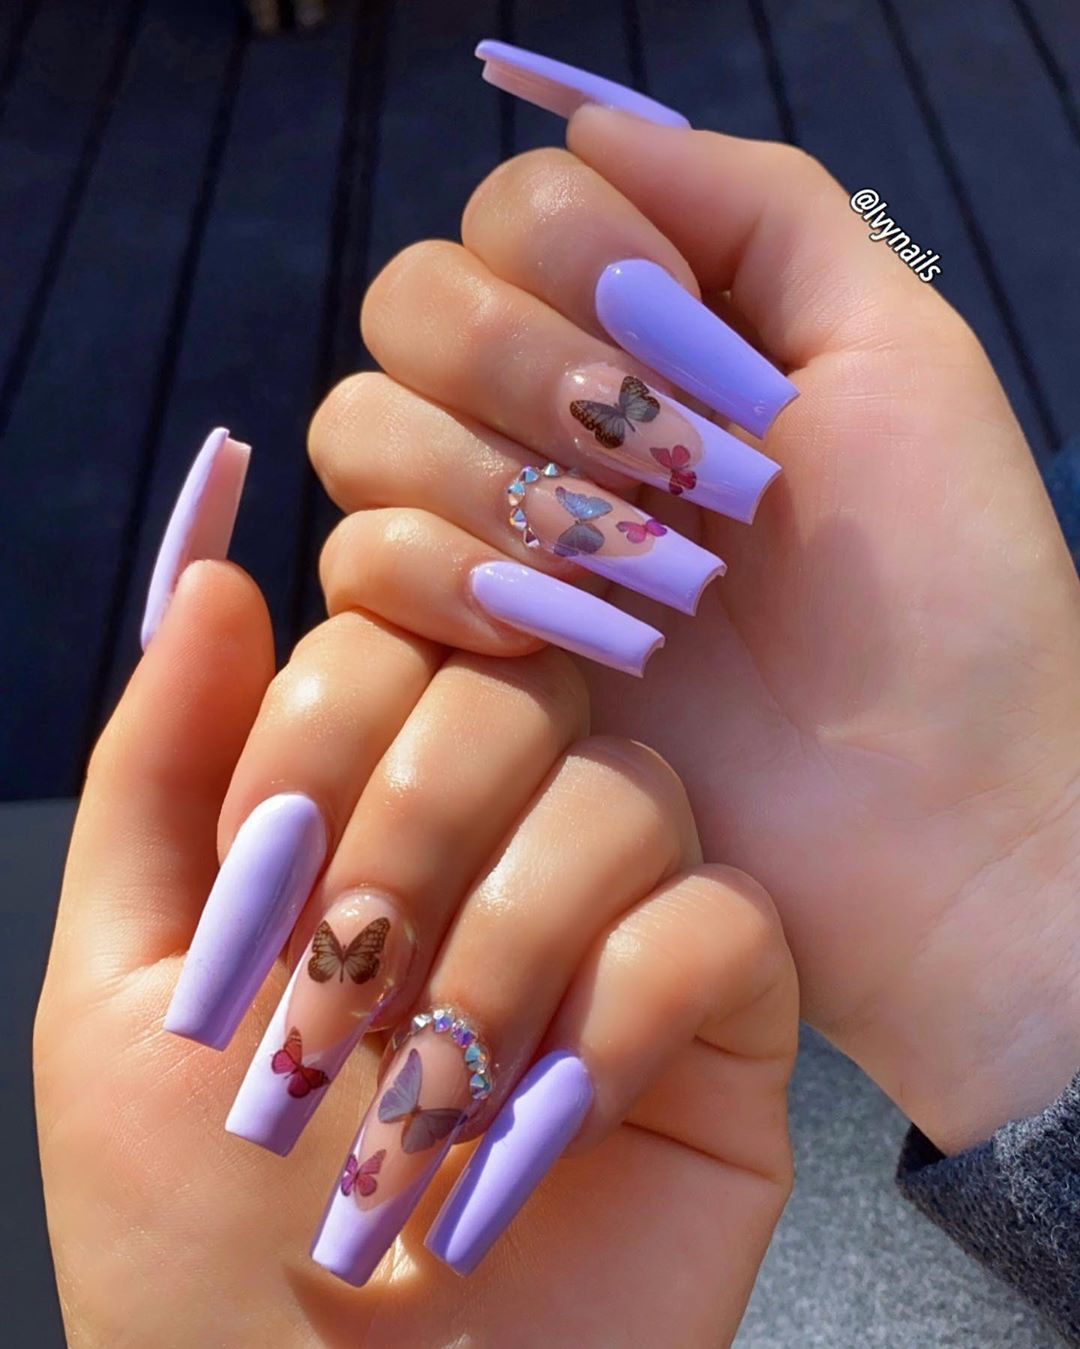 40+ Coolest Nail Art Ideas For Spring and Summer